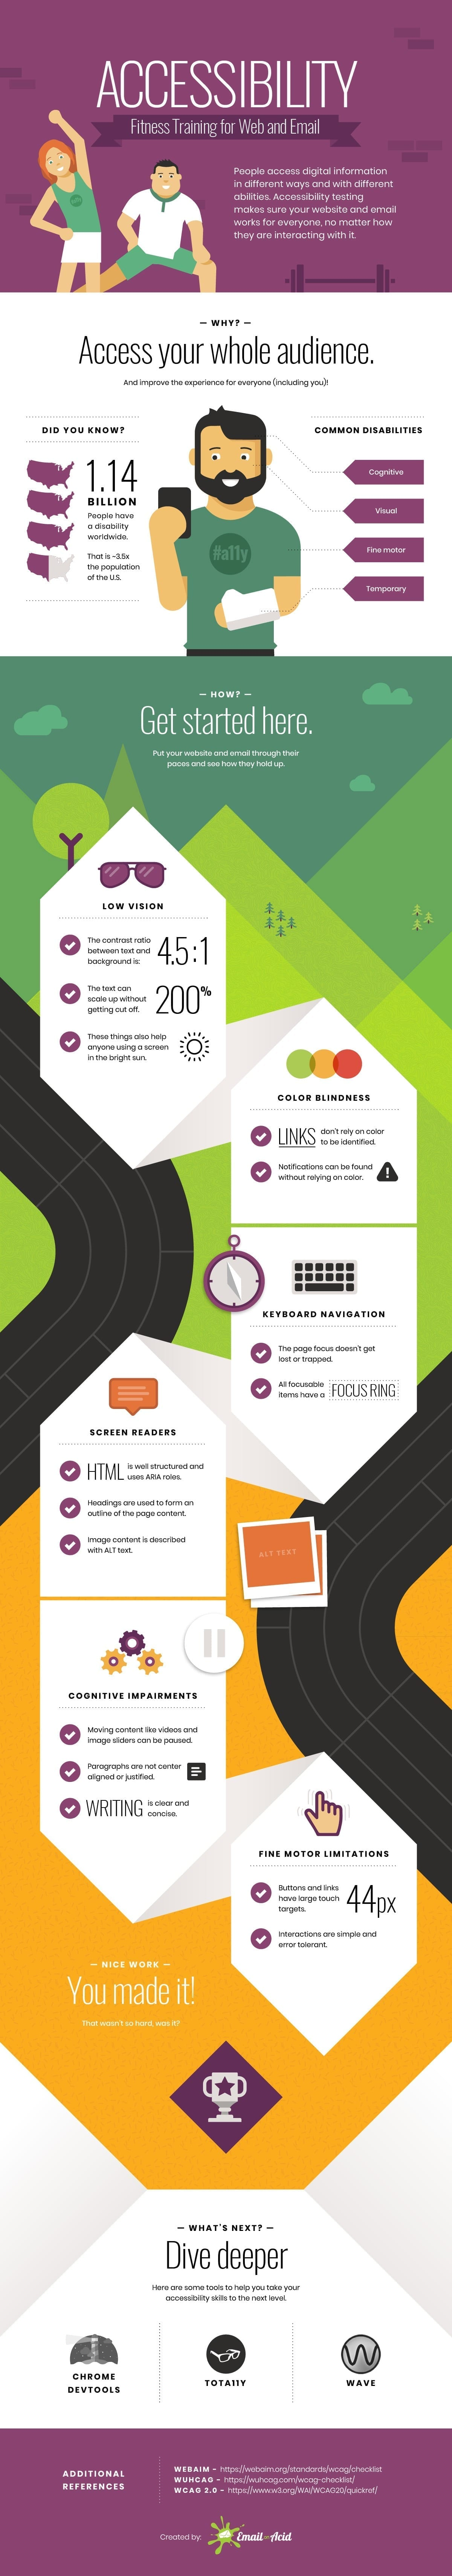 Email accessibility best practices infographic